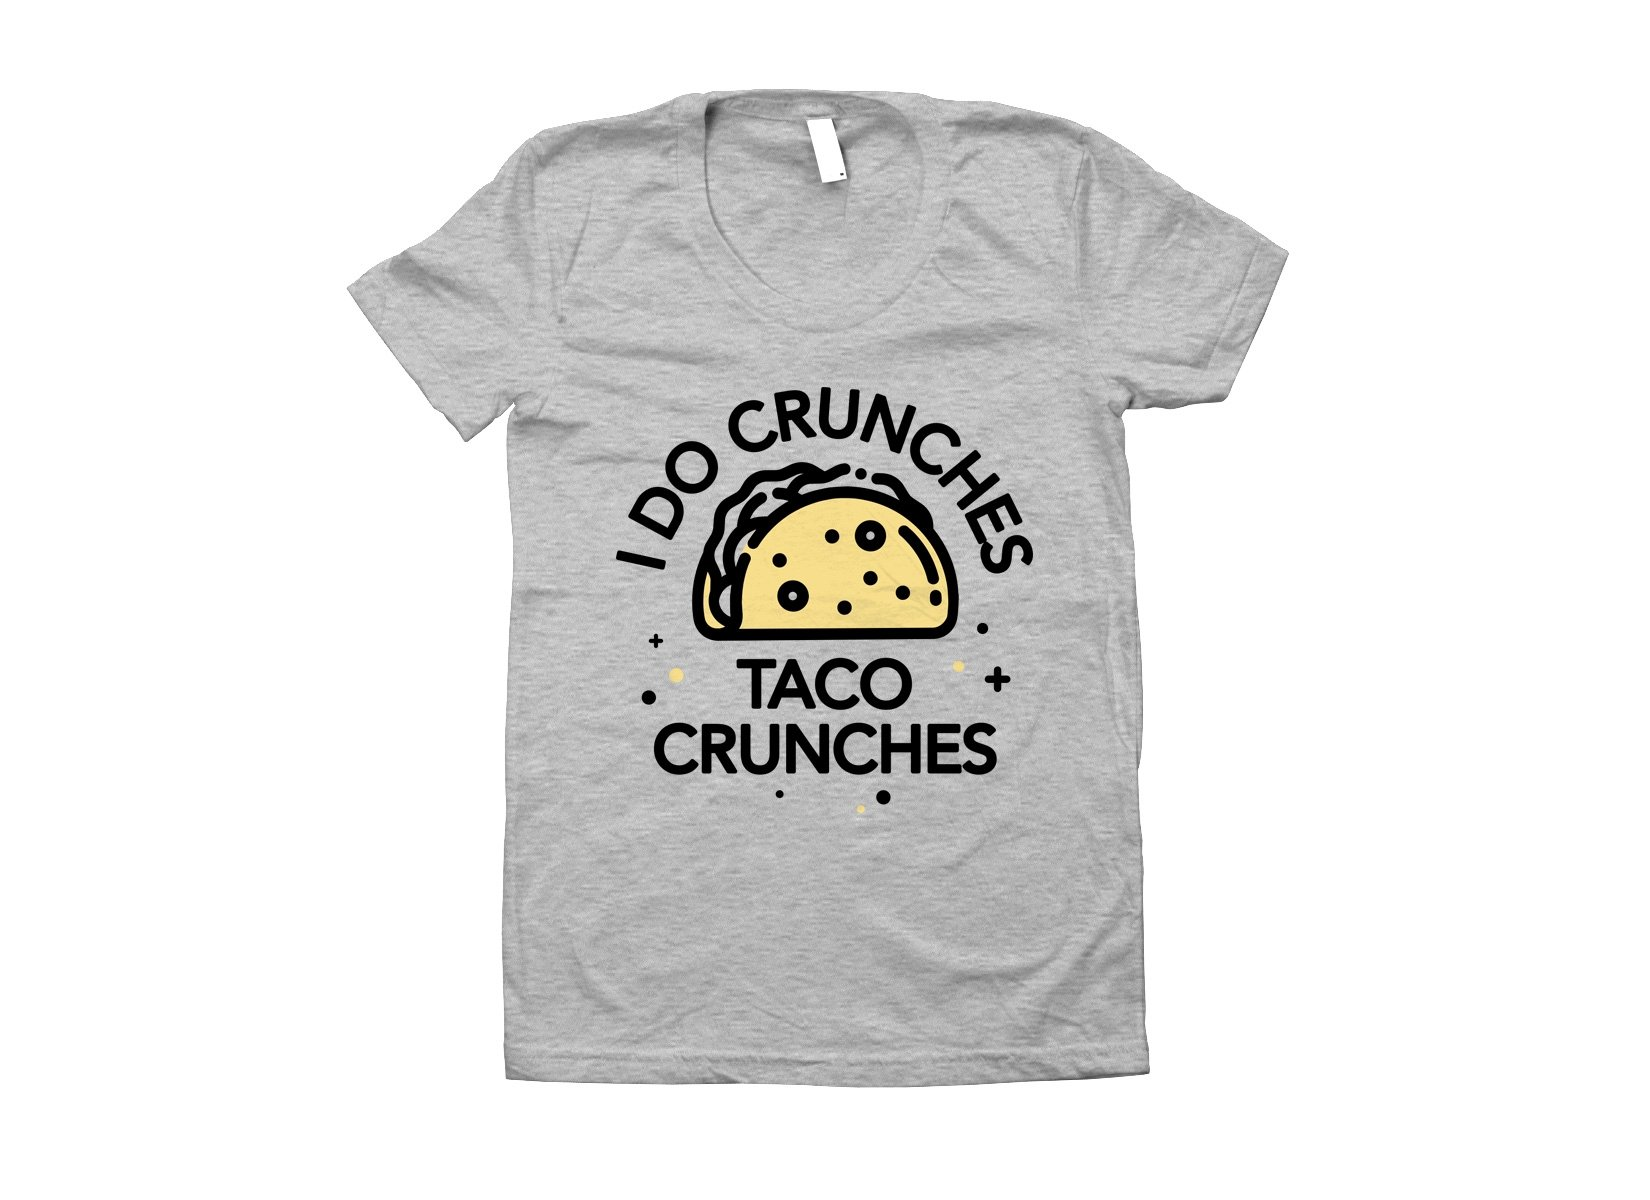 I Do Crunches Taco Crunches on Juniors T-Shirt